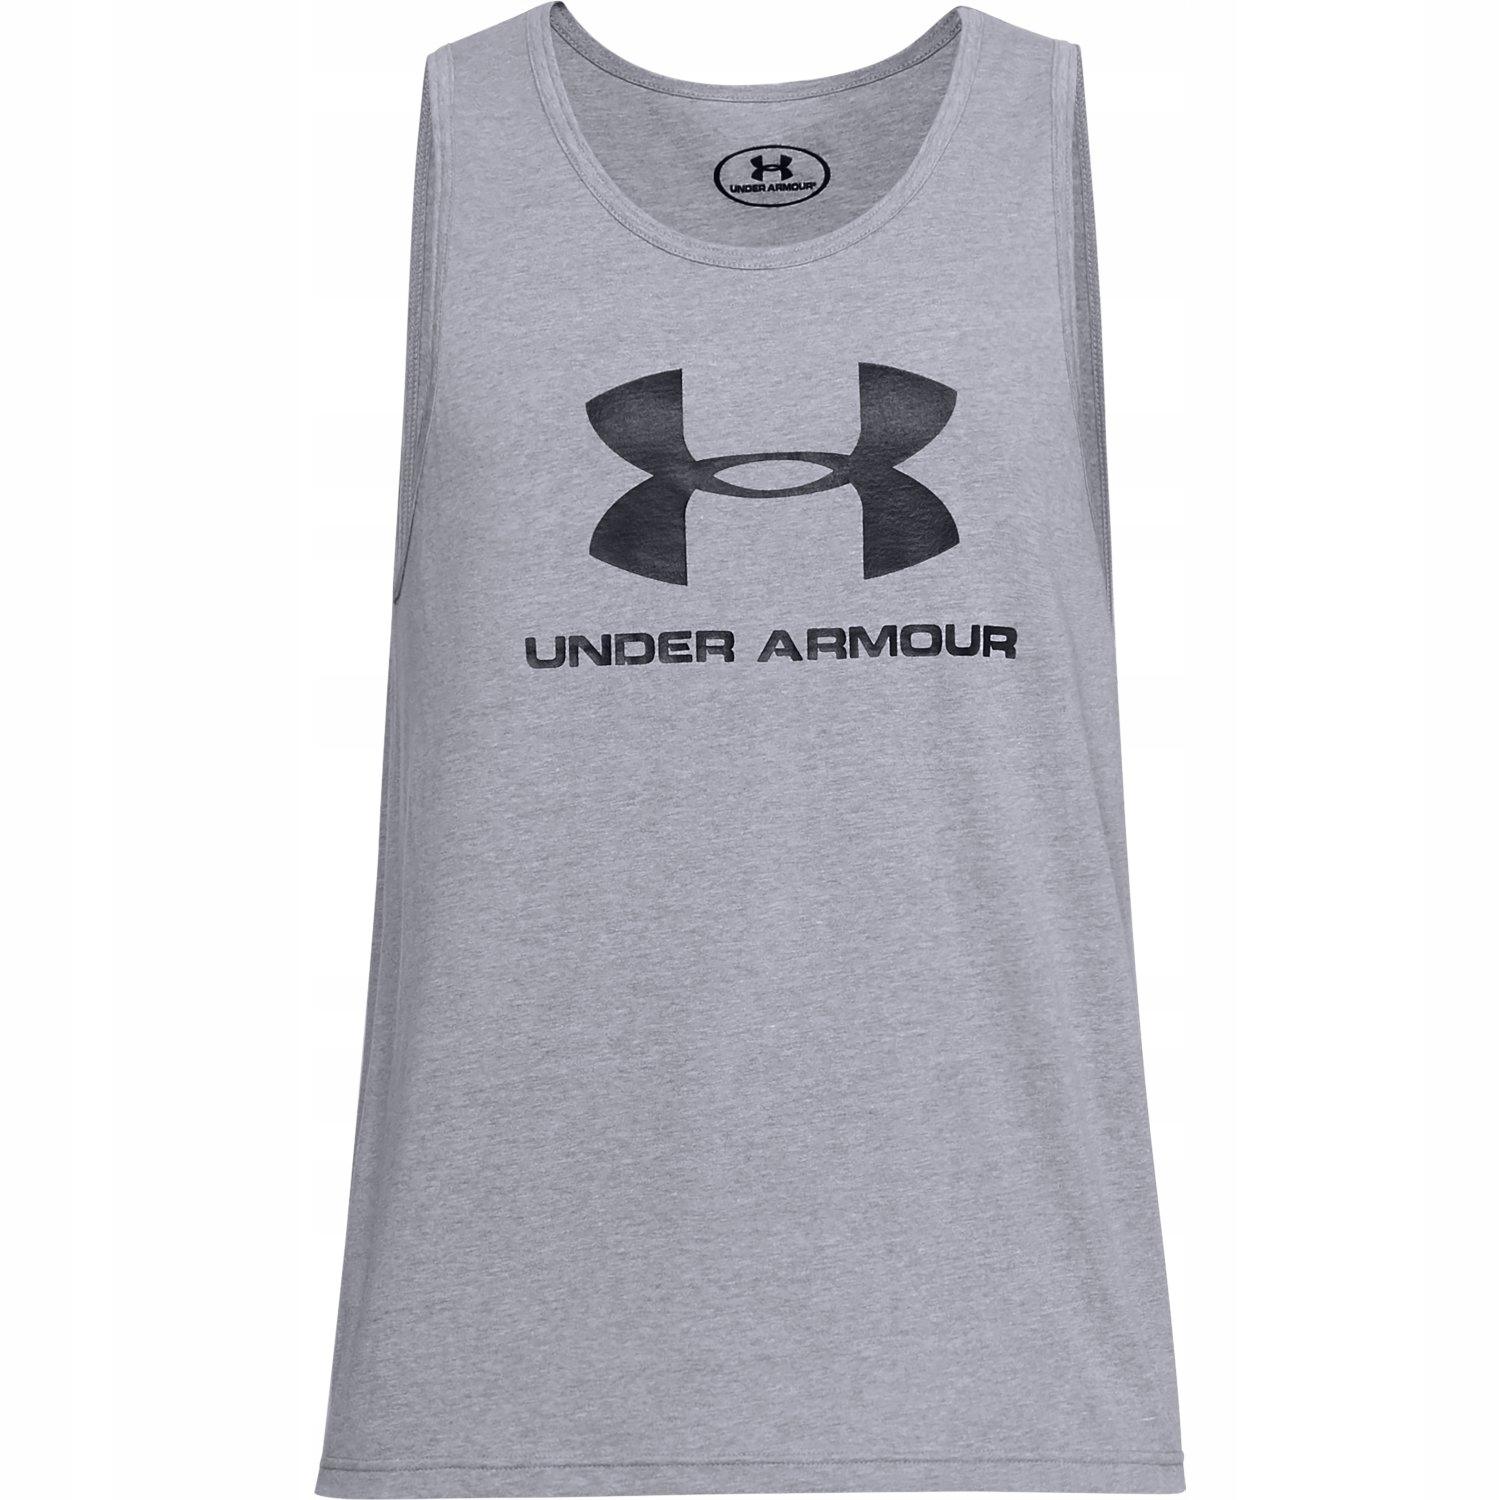 UNDER ARMOUR TANK TOP SPORTSTYLE LOGO 036 roz L